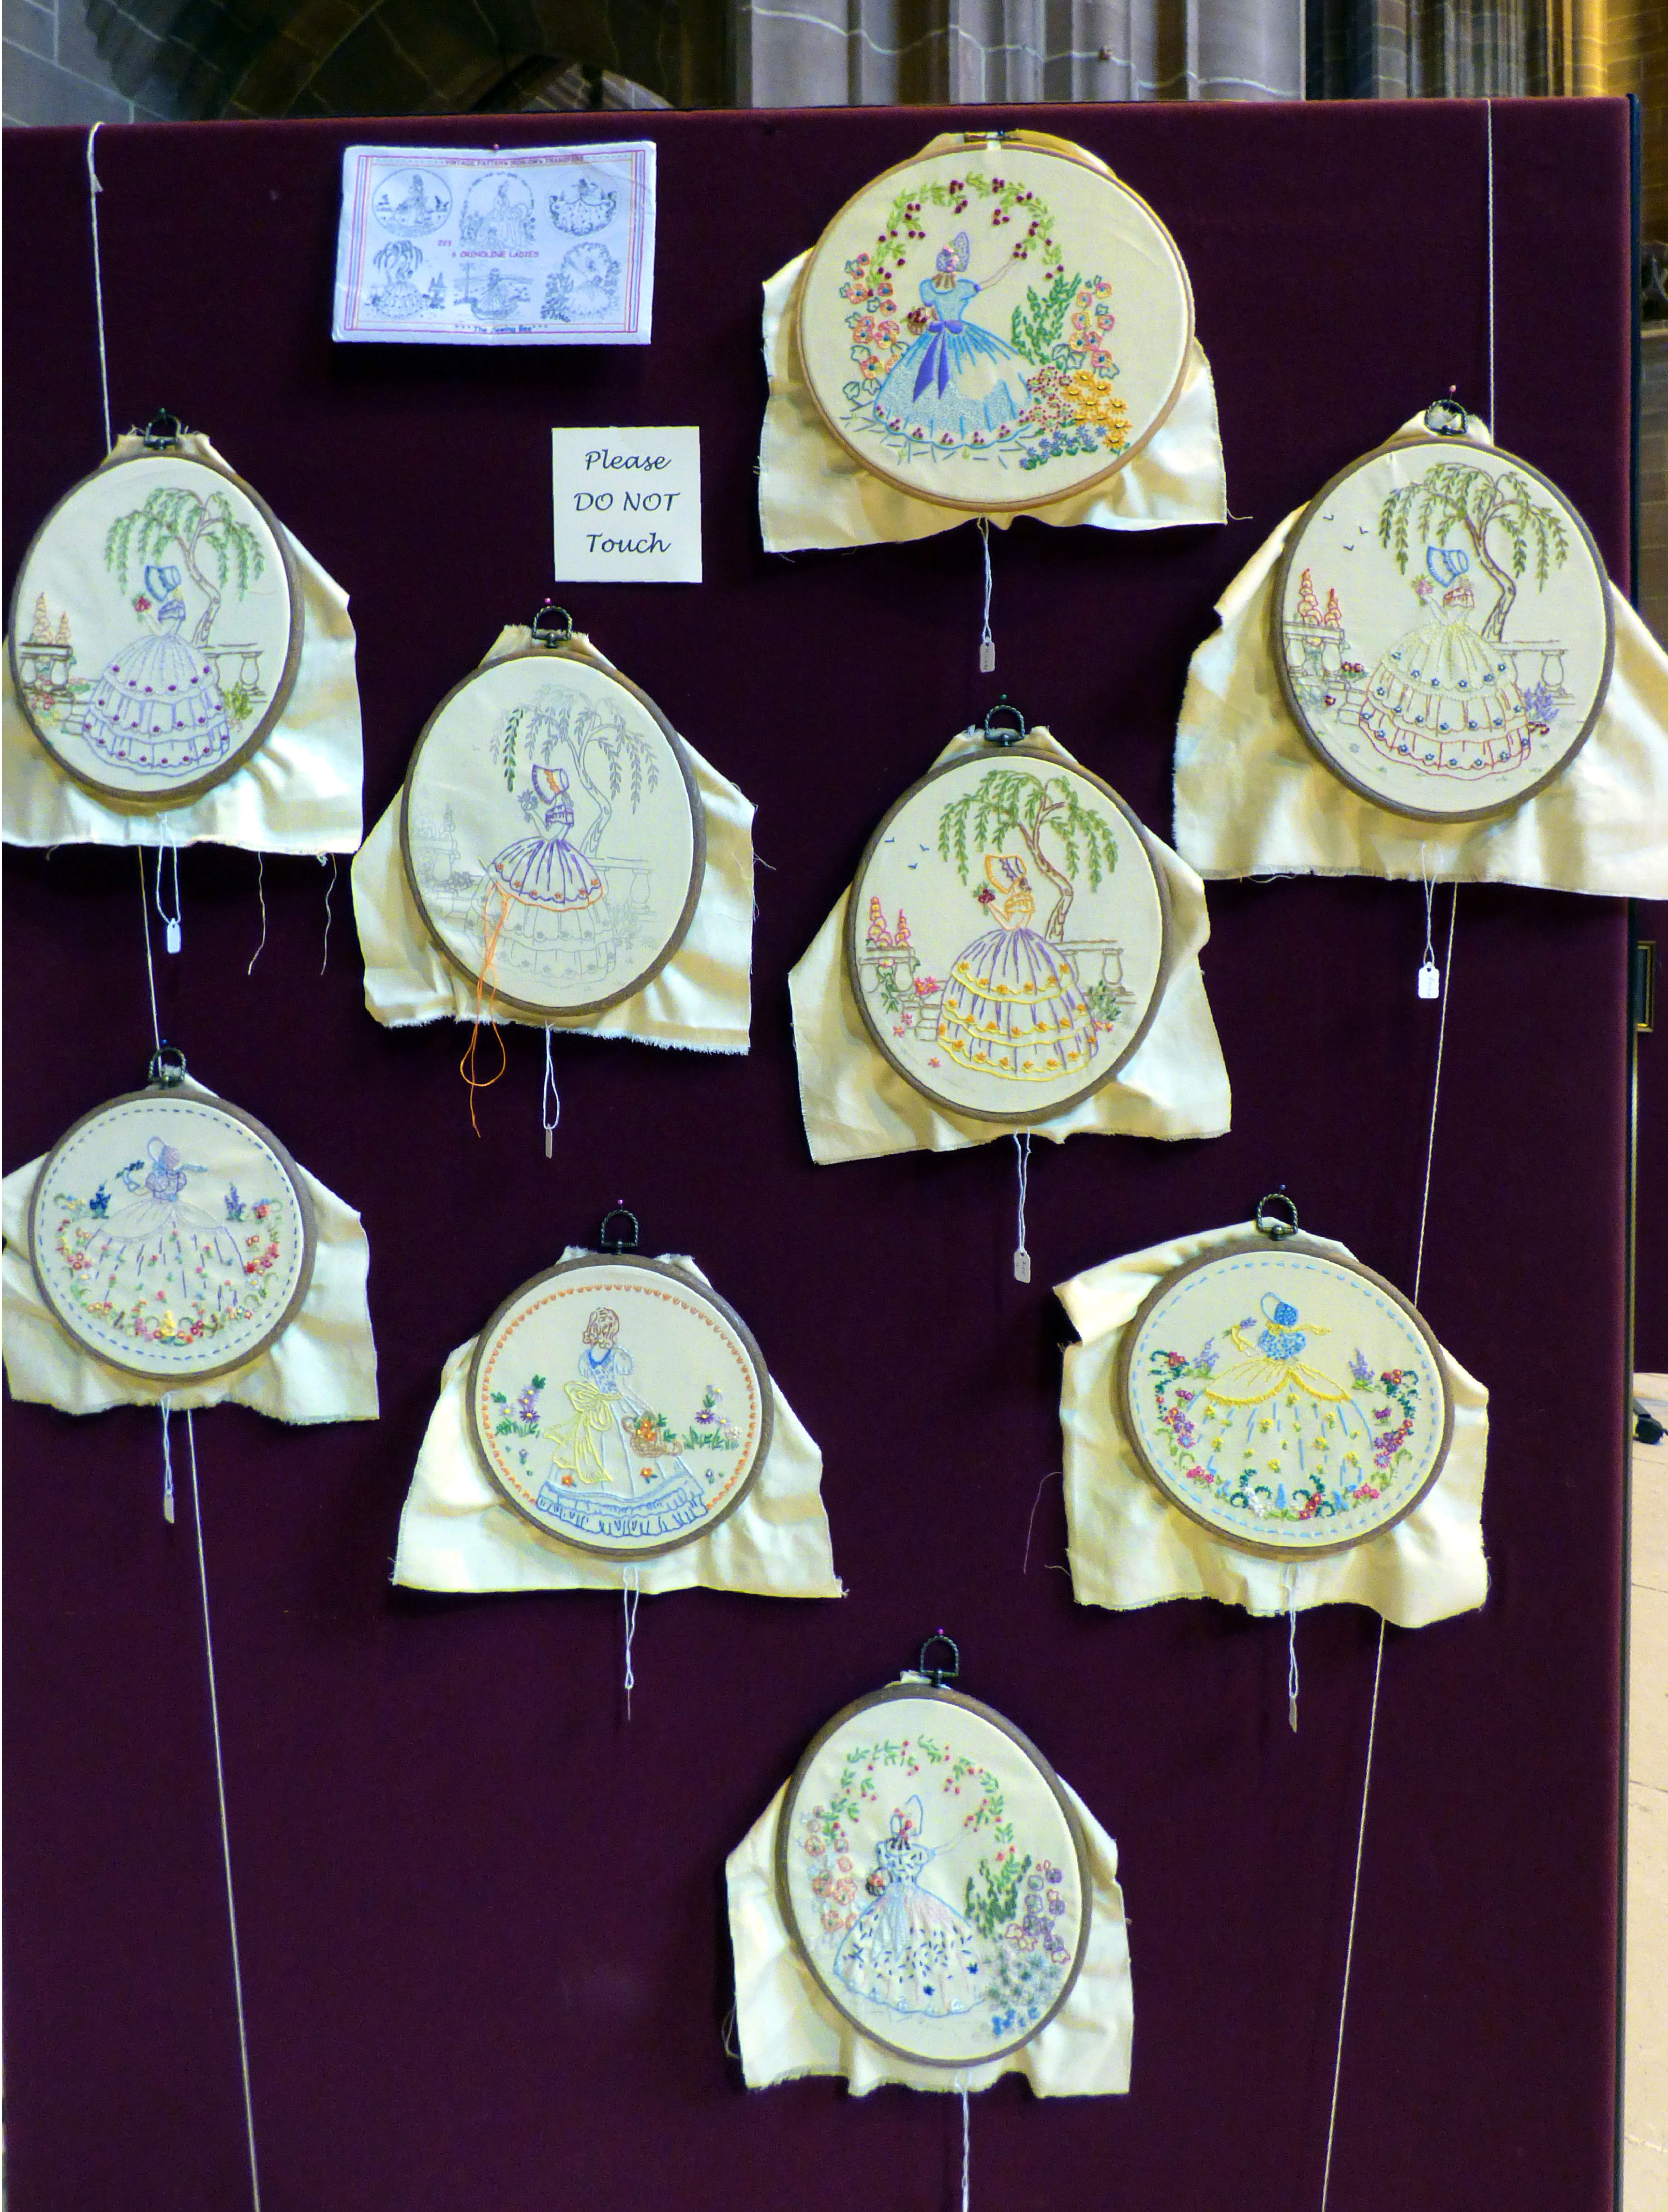 CRINOLINE LADIES by Merseyside Young Embroiderers at 60 Glorious Years exhibition, Liverpool Anglican Cathedral 2016